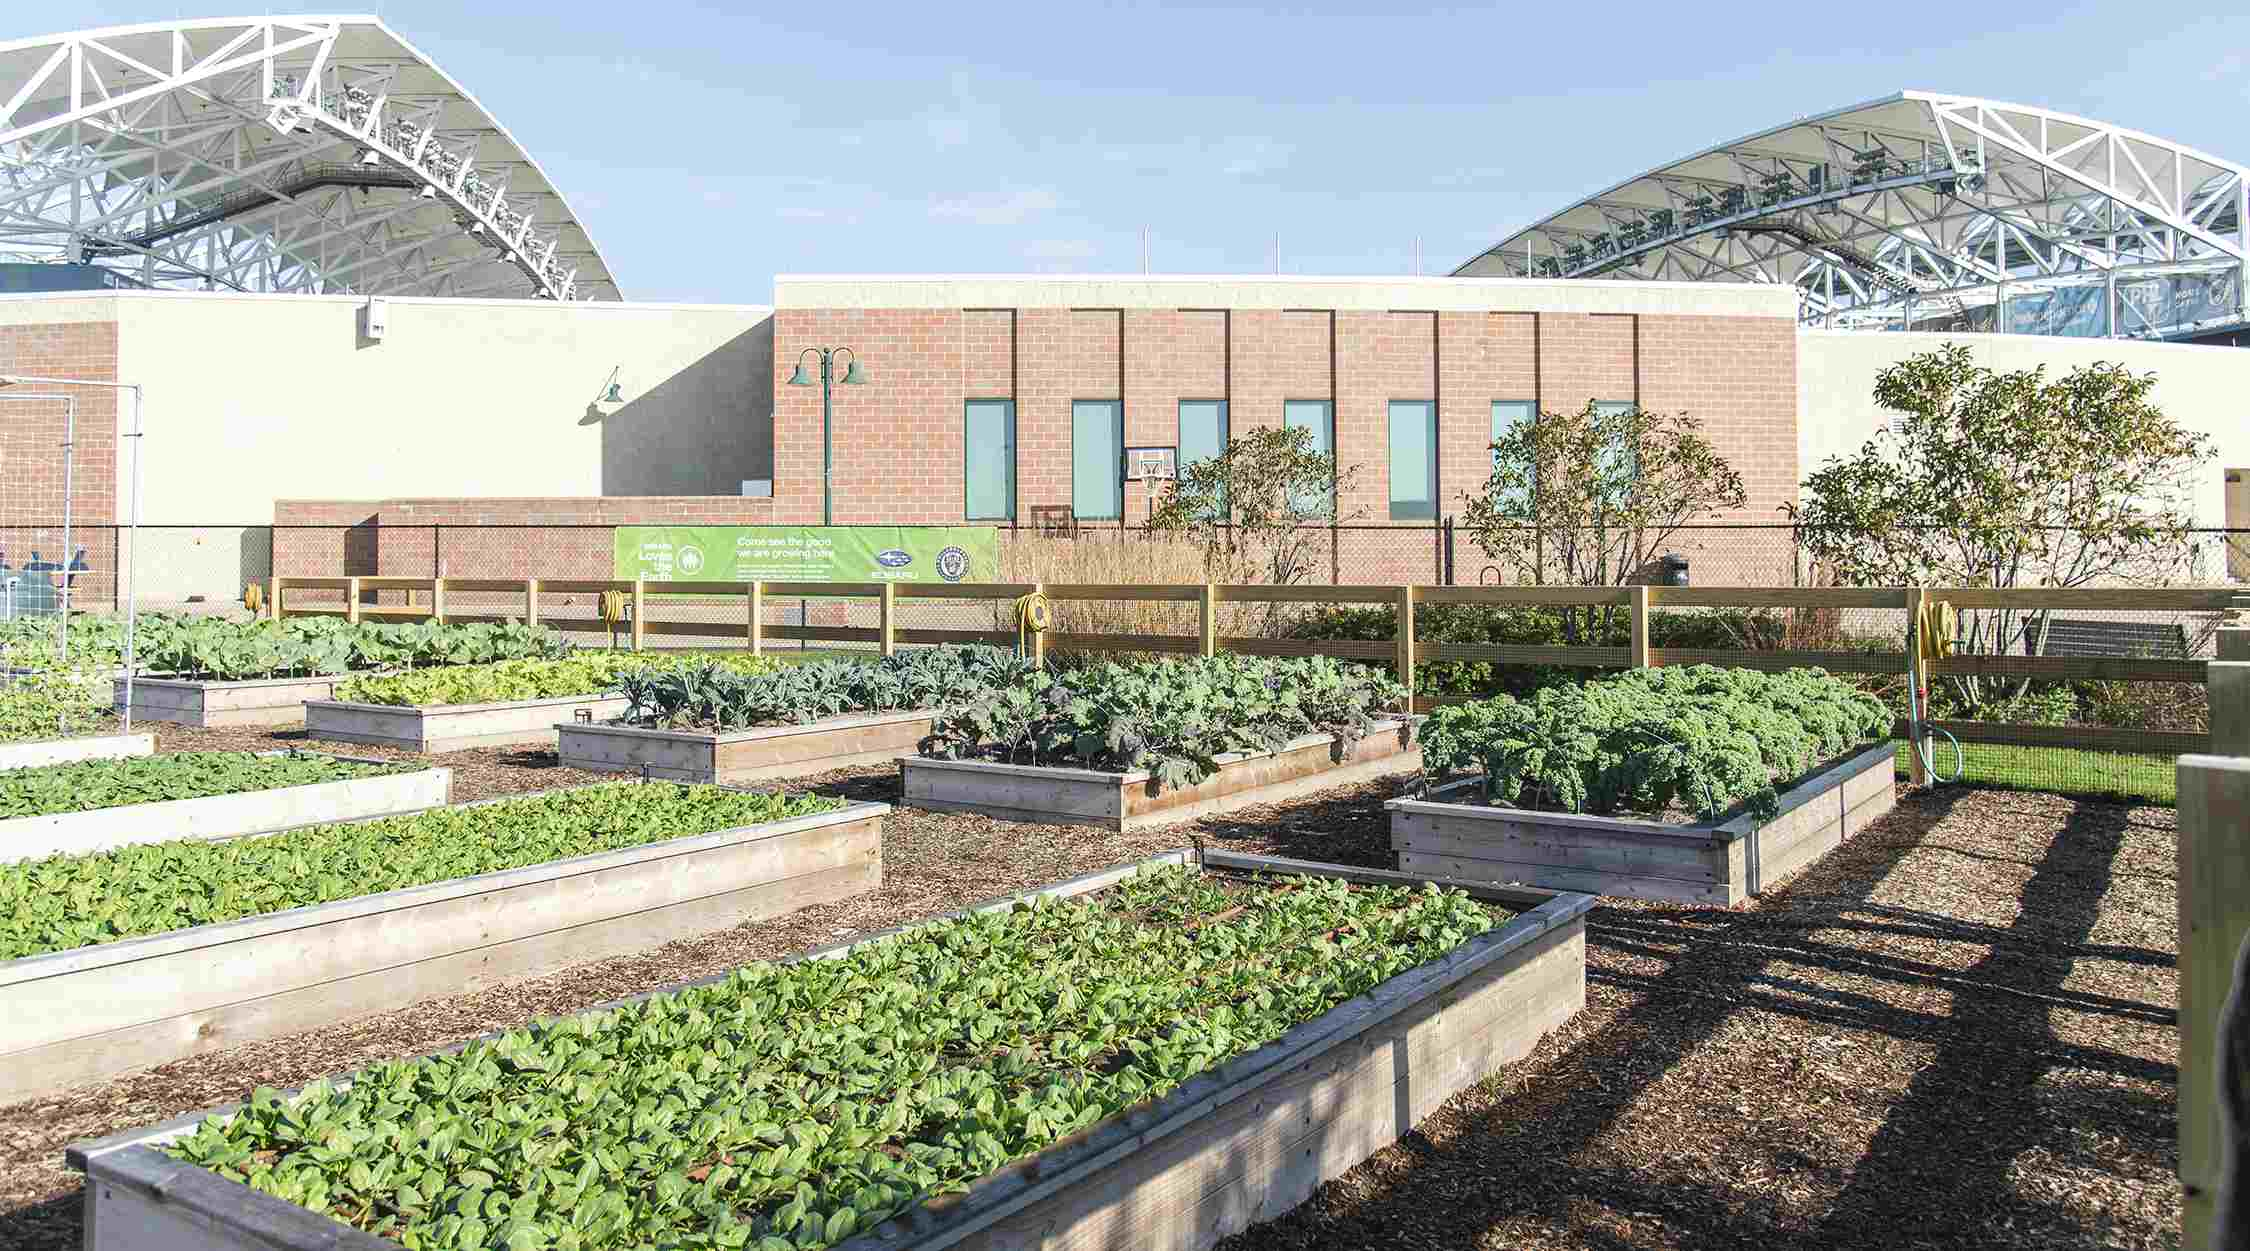 Subaru Stadium Garden Could Give Chester Food Banks 4,200 Pounds of Fresh Produce a Year